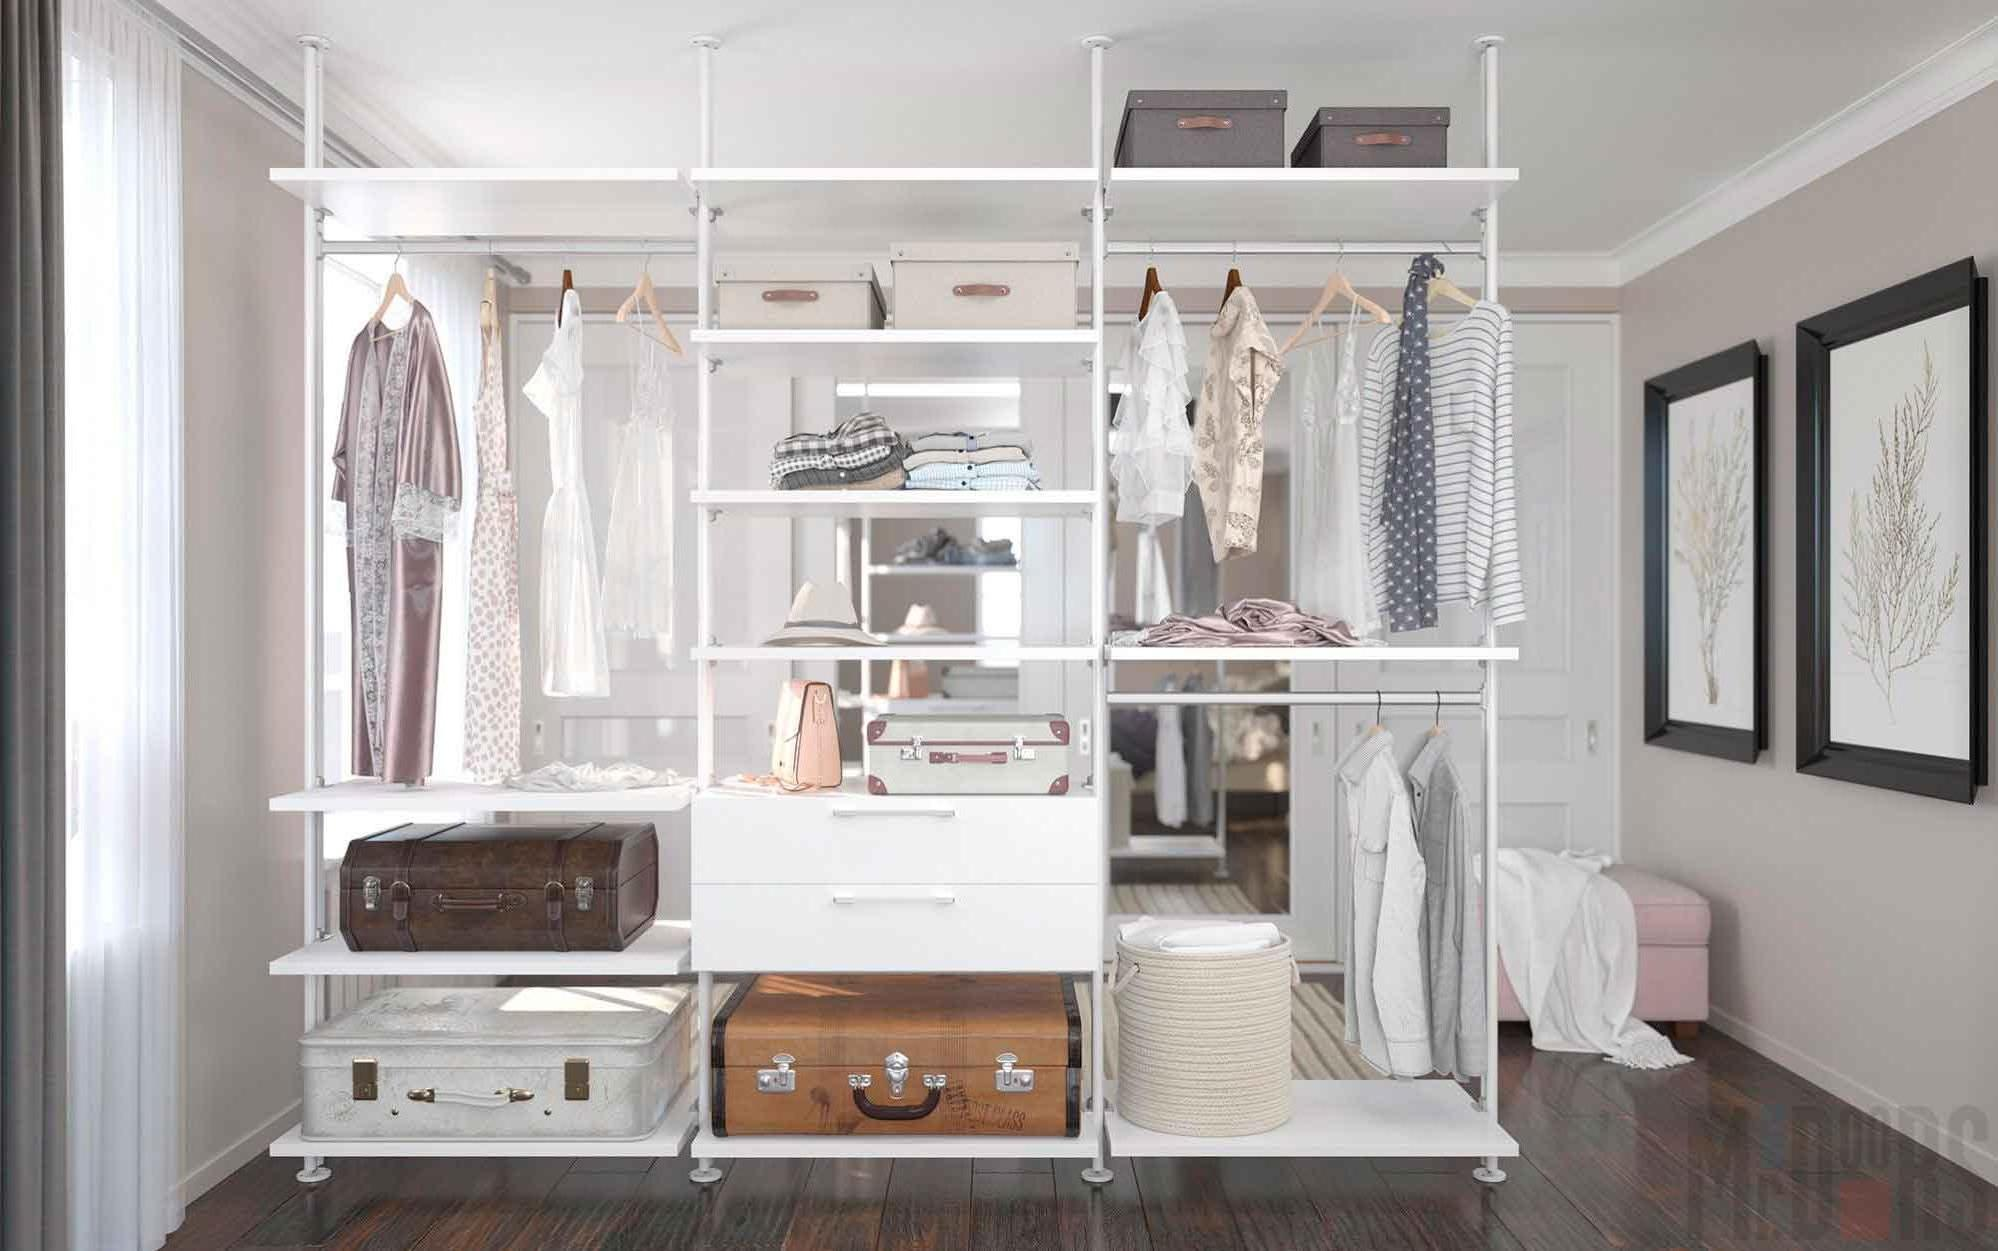 Design of a compact dressing room for a small room